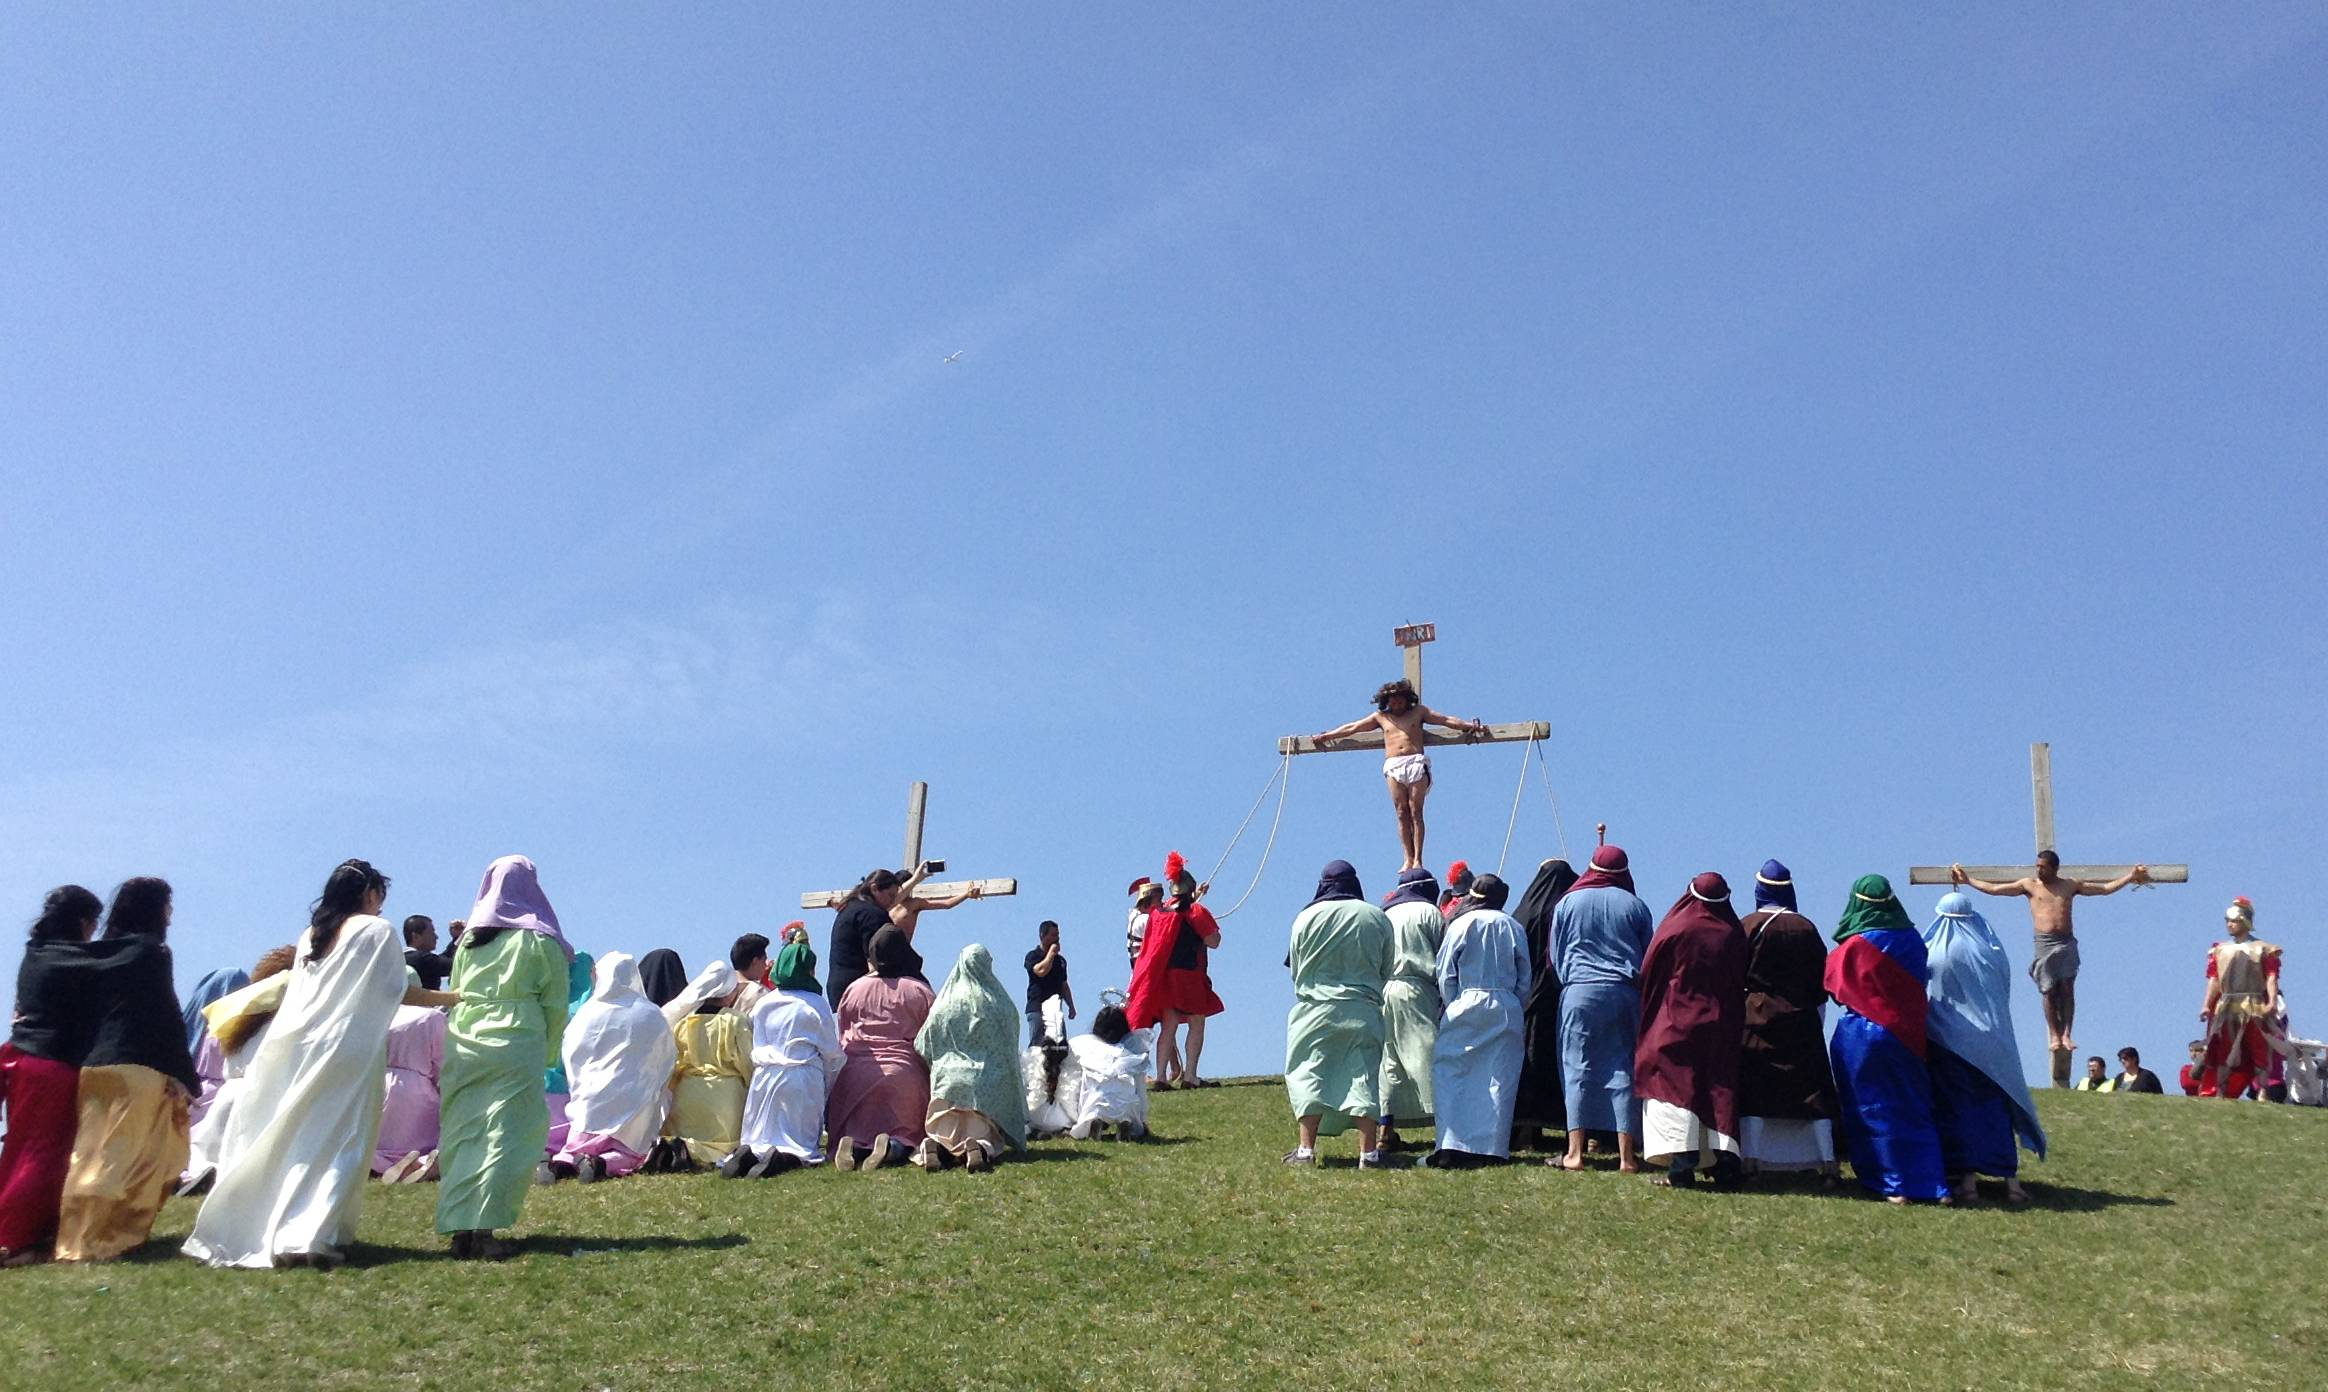 Isidro Zuniga, center, portrays Jesus in Saint Ansgar Catholic Church's staging of Via Crucis, or Way of the Cross, in Hanover Park Friday.